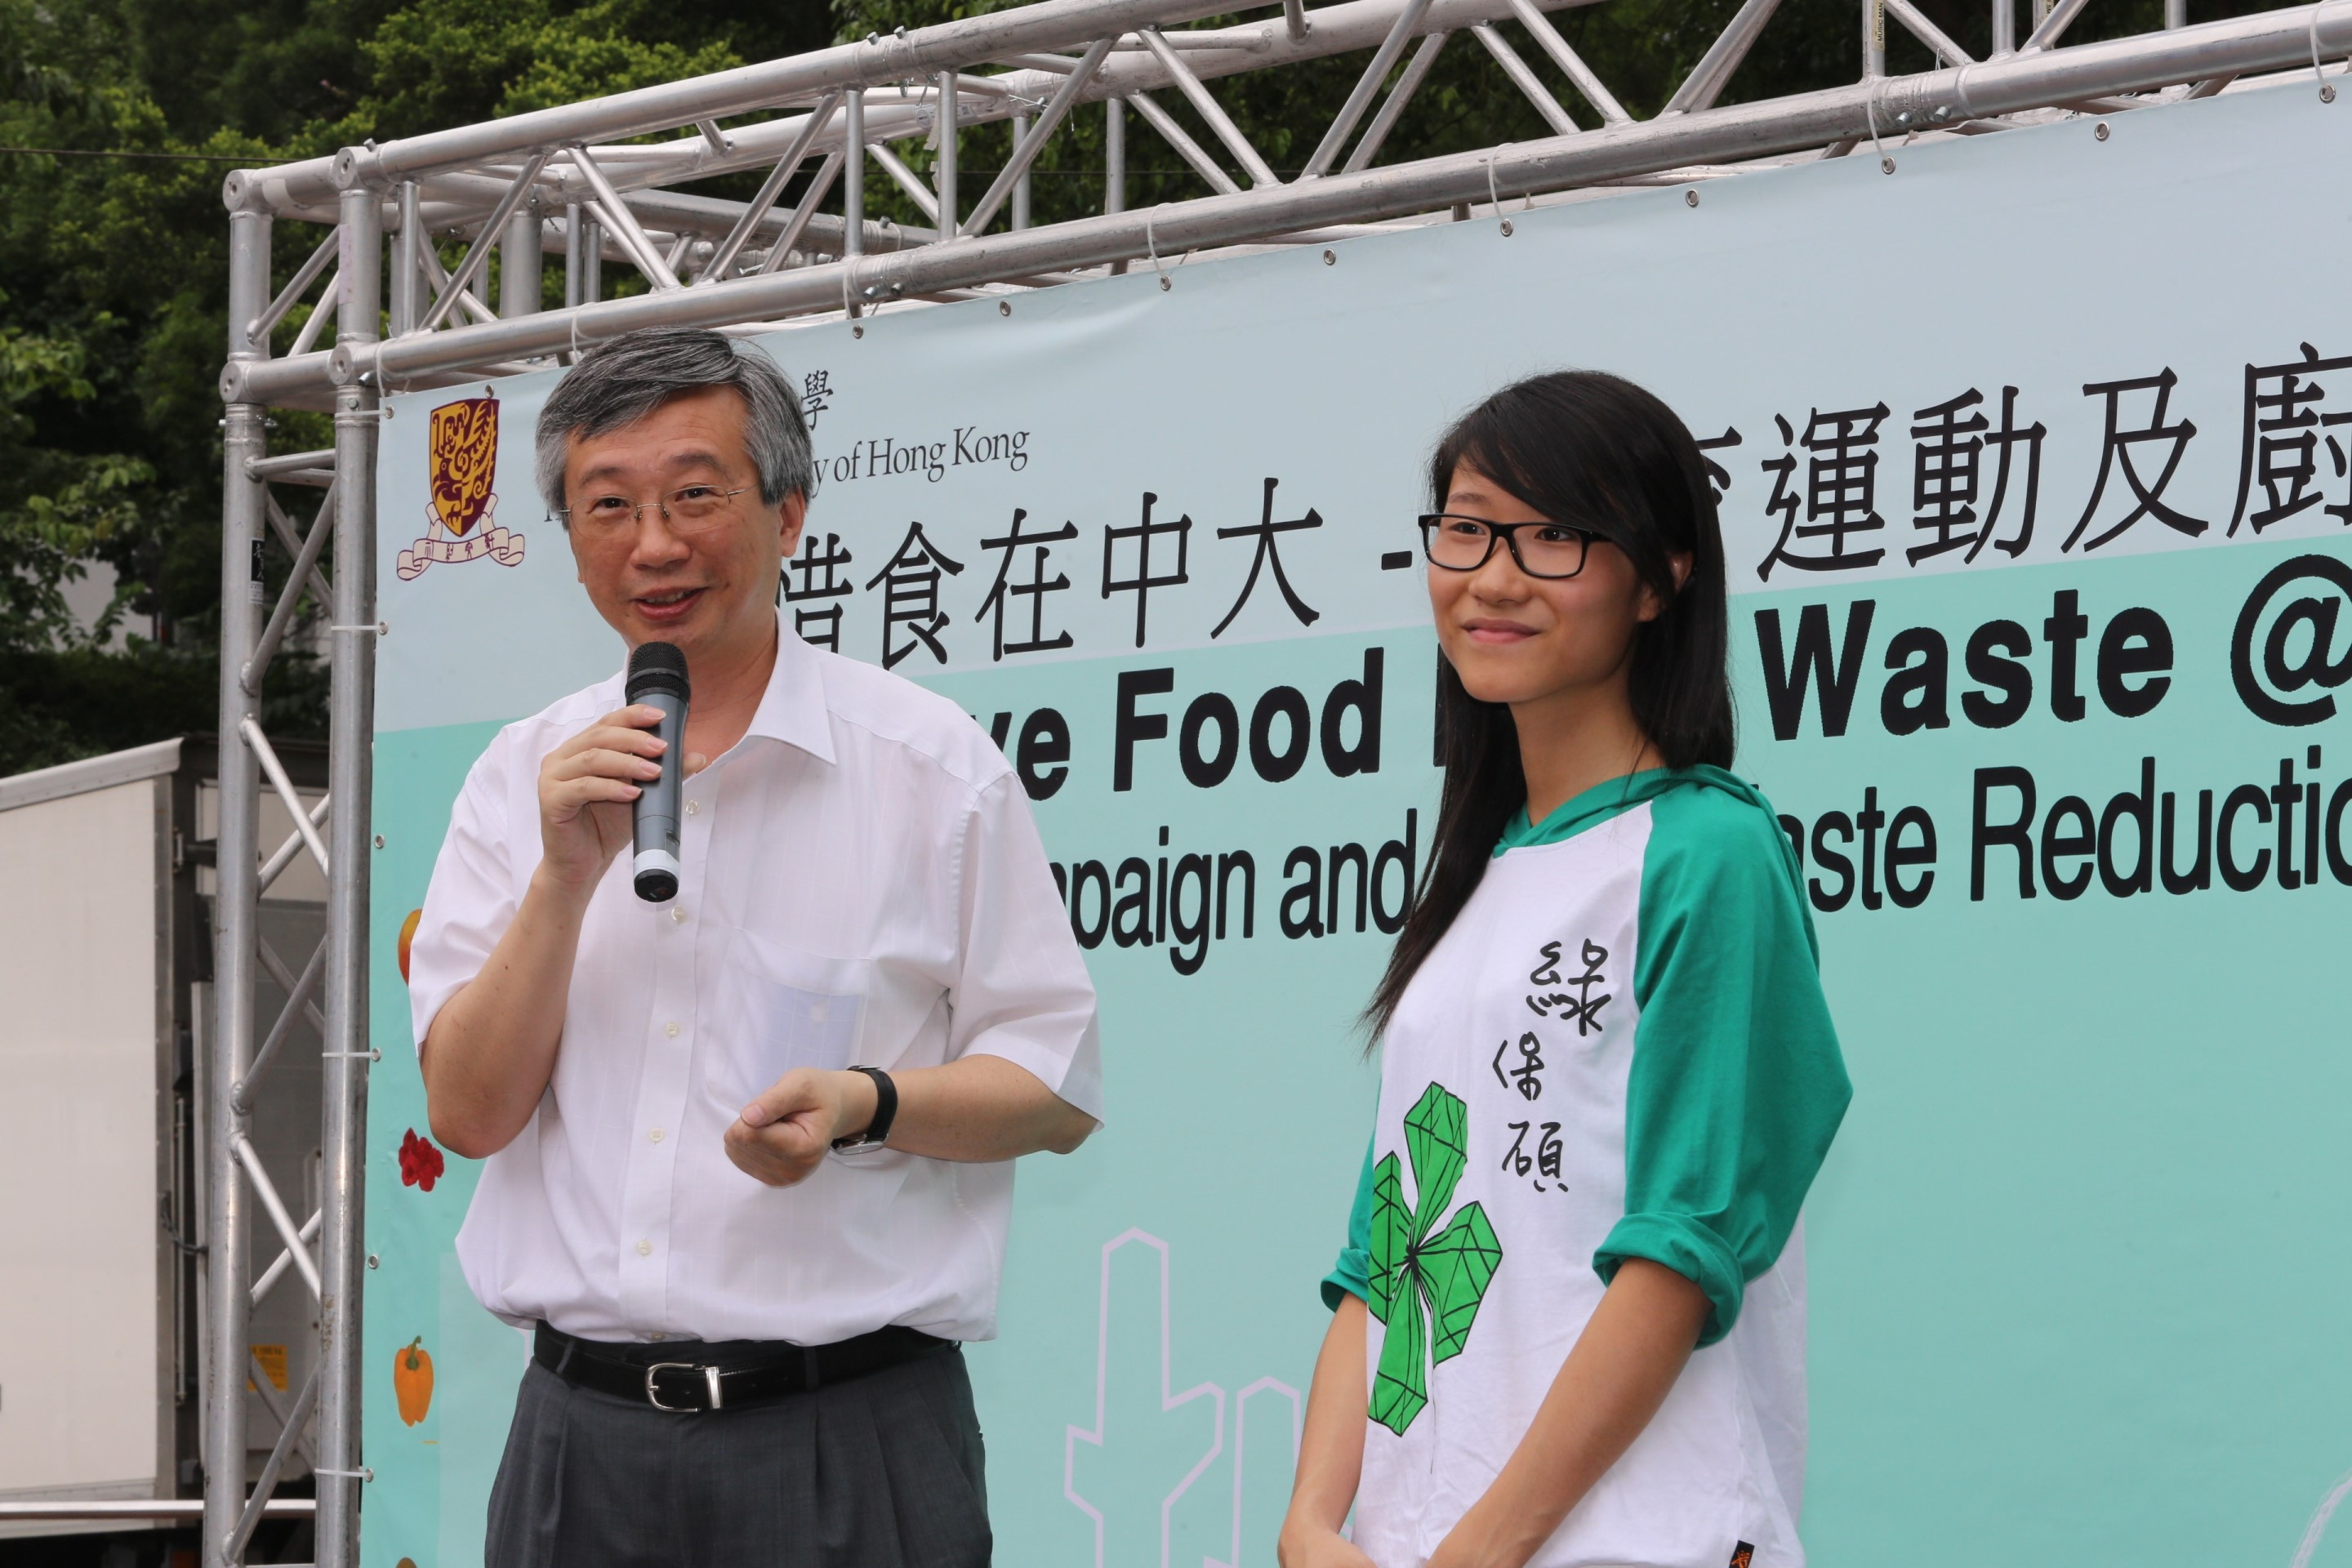 Prof. Fung Tung, Associate Pro-Vice-Chancellor of CUHK (left) delivers an opening remarks to kick-off the 'Love Food Hate Waste @ CUHK' campaign.